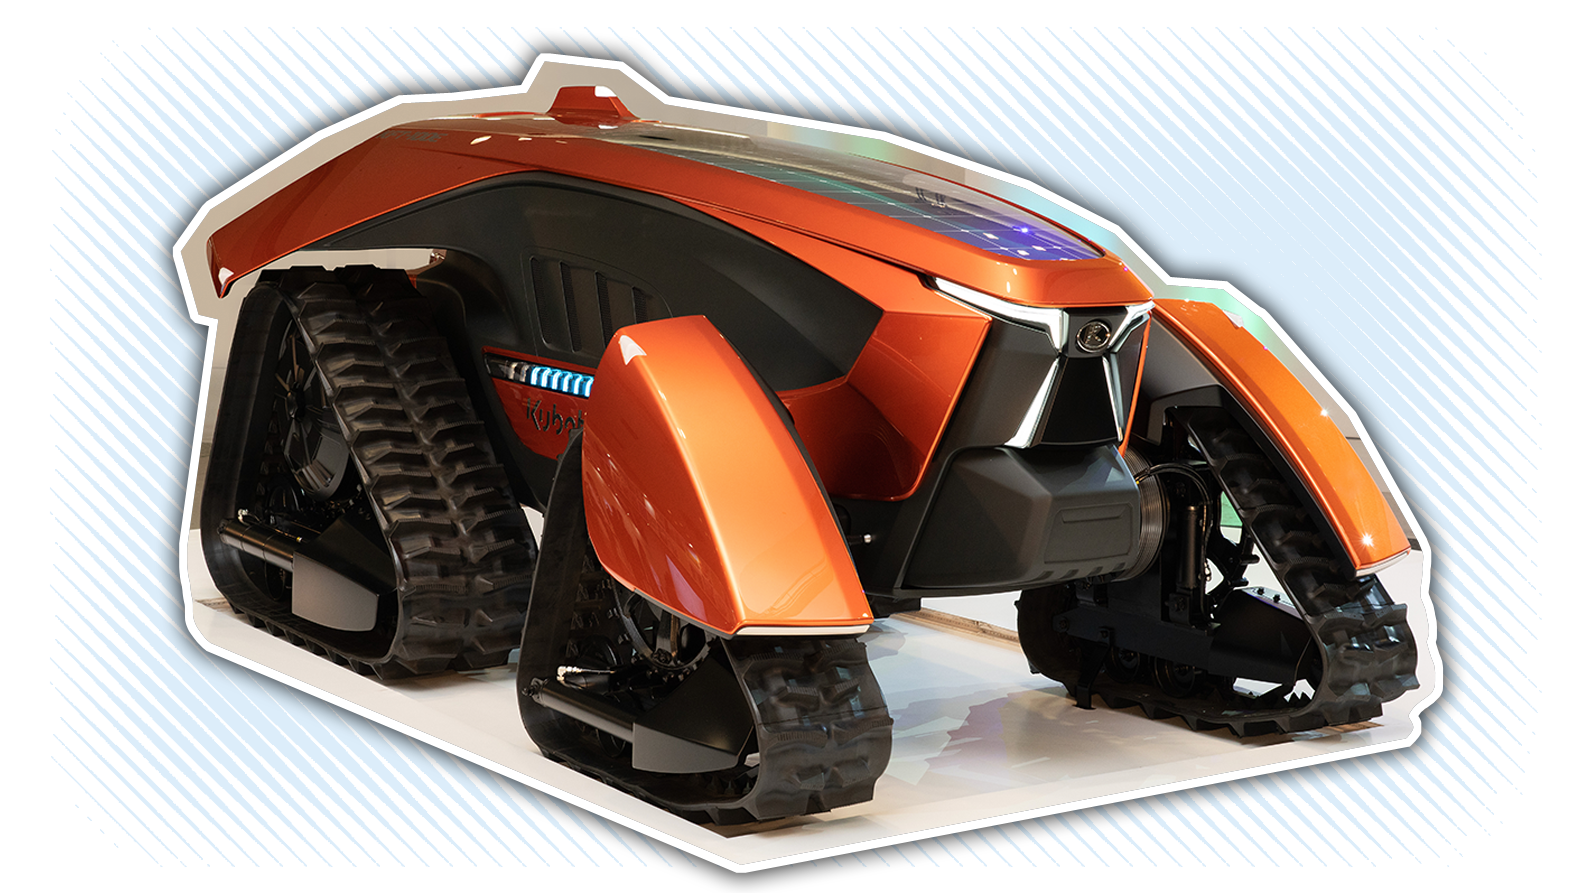 Concept Tractors Are A Thing And Boy Does This Kubota One Look Pissed